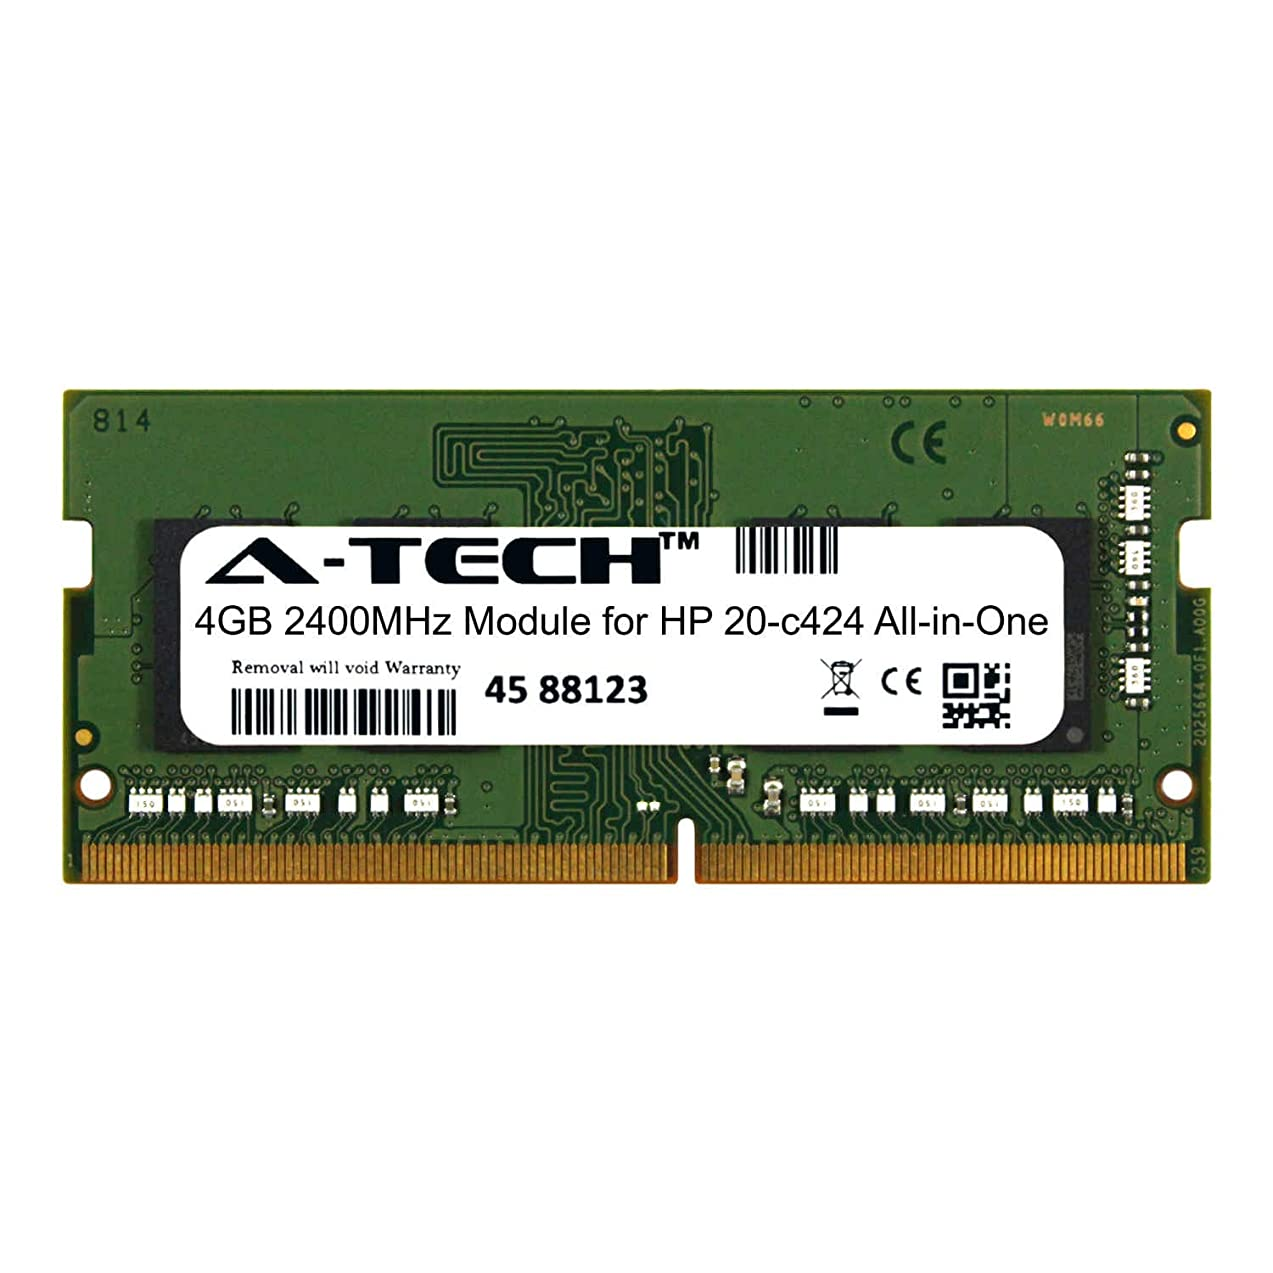 A-Tech 4GB Module for HP 20-c424 All-in-One (AIO) Compatible DDR4 2400Mhz Memory Ram (ATMS276274A25824X1)